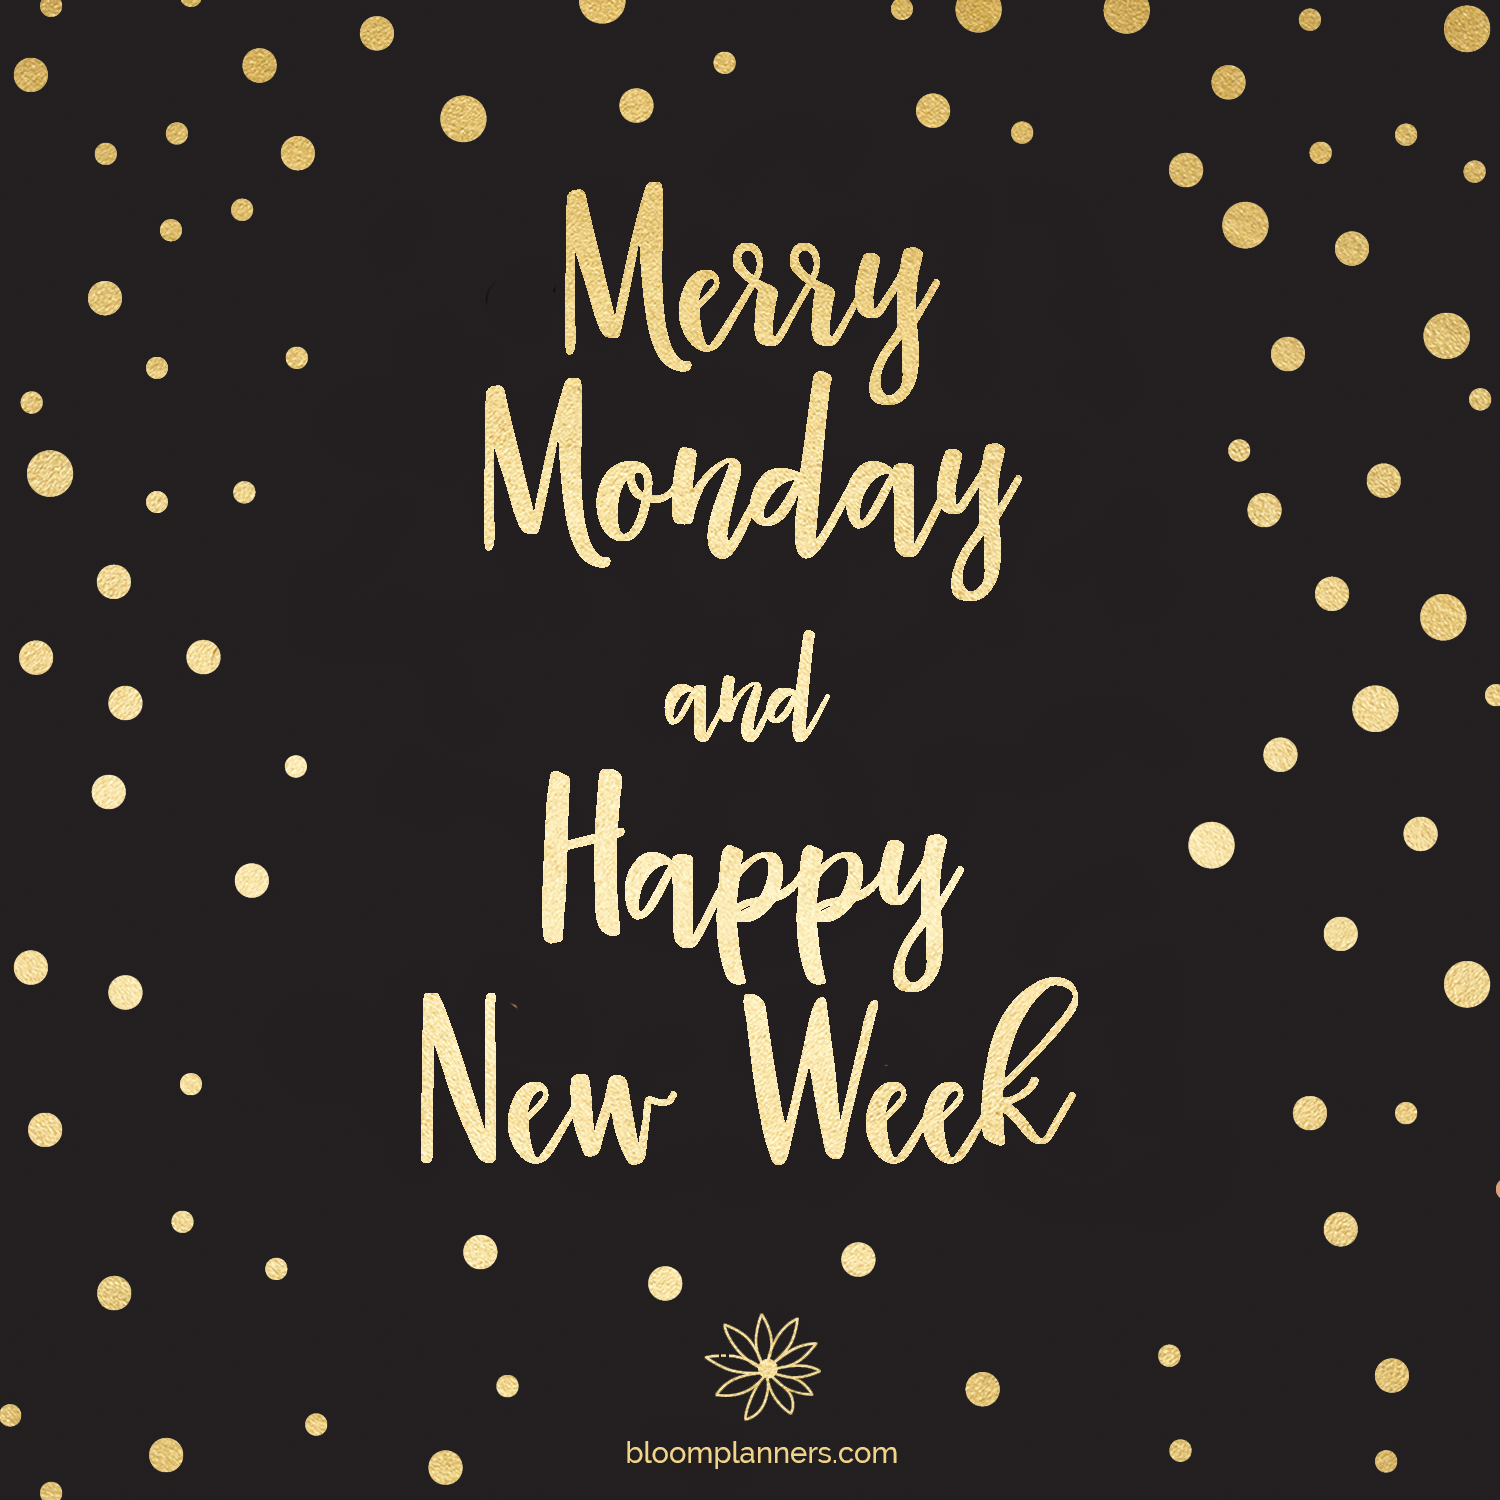 Hello monday have a great week love image collections - Merry Monday And Happy New Week Monday Mondaymotivation Motivation